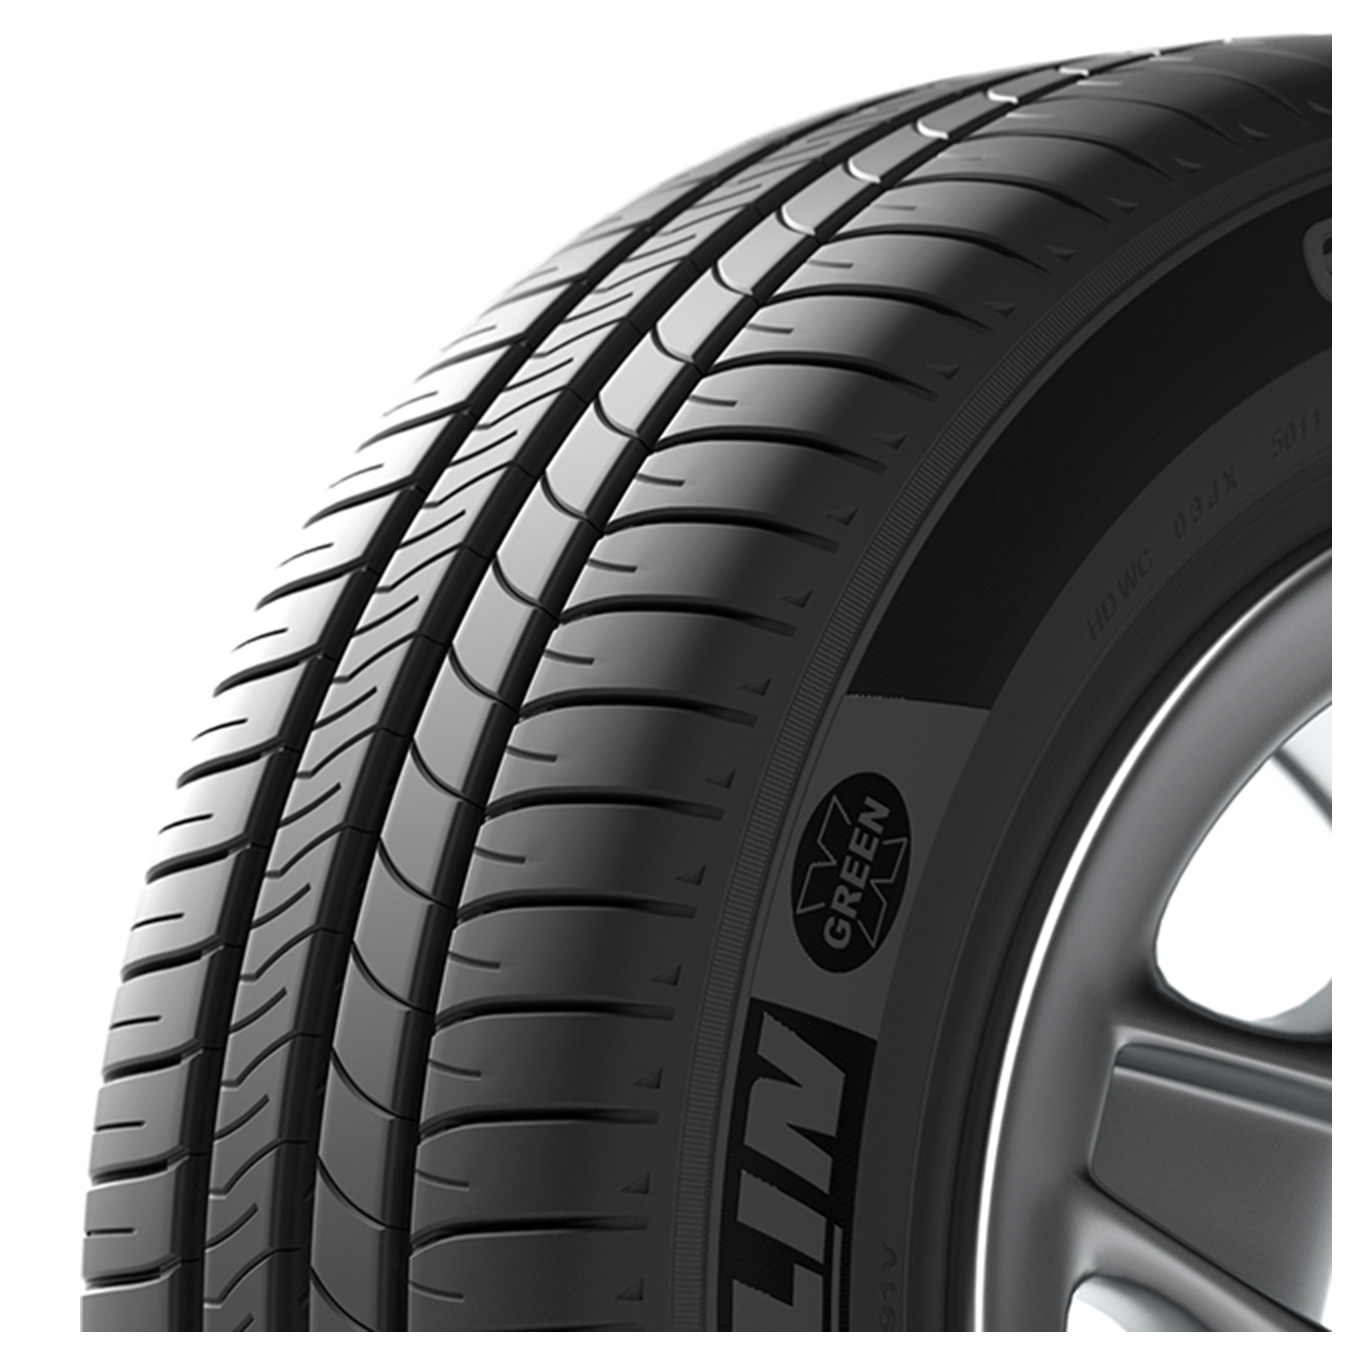 Pneu Michelin 175/65 R14 82T Energy Saver + 175/65 R14 82T